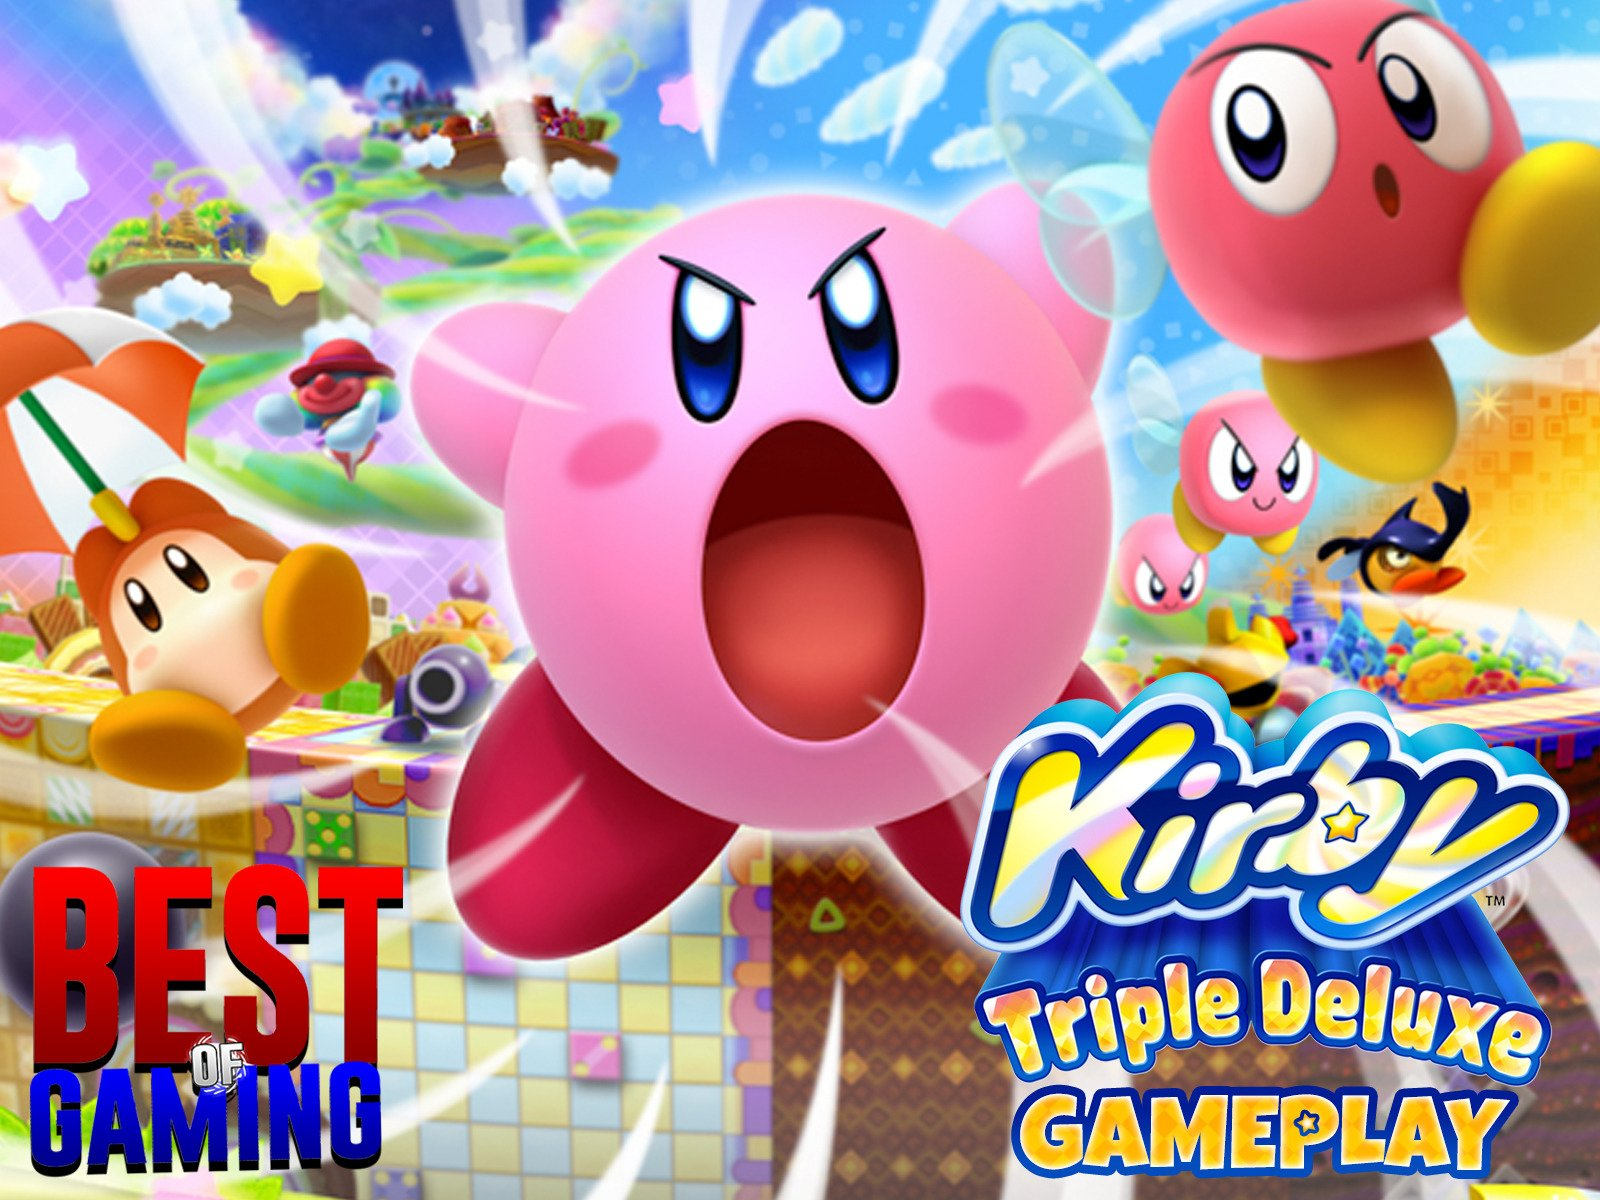 Clip: Kirby Triple Deluxe Gameplay - Season 1